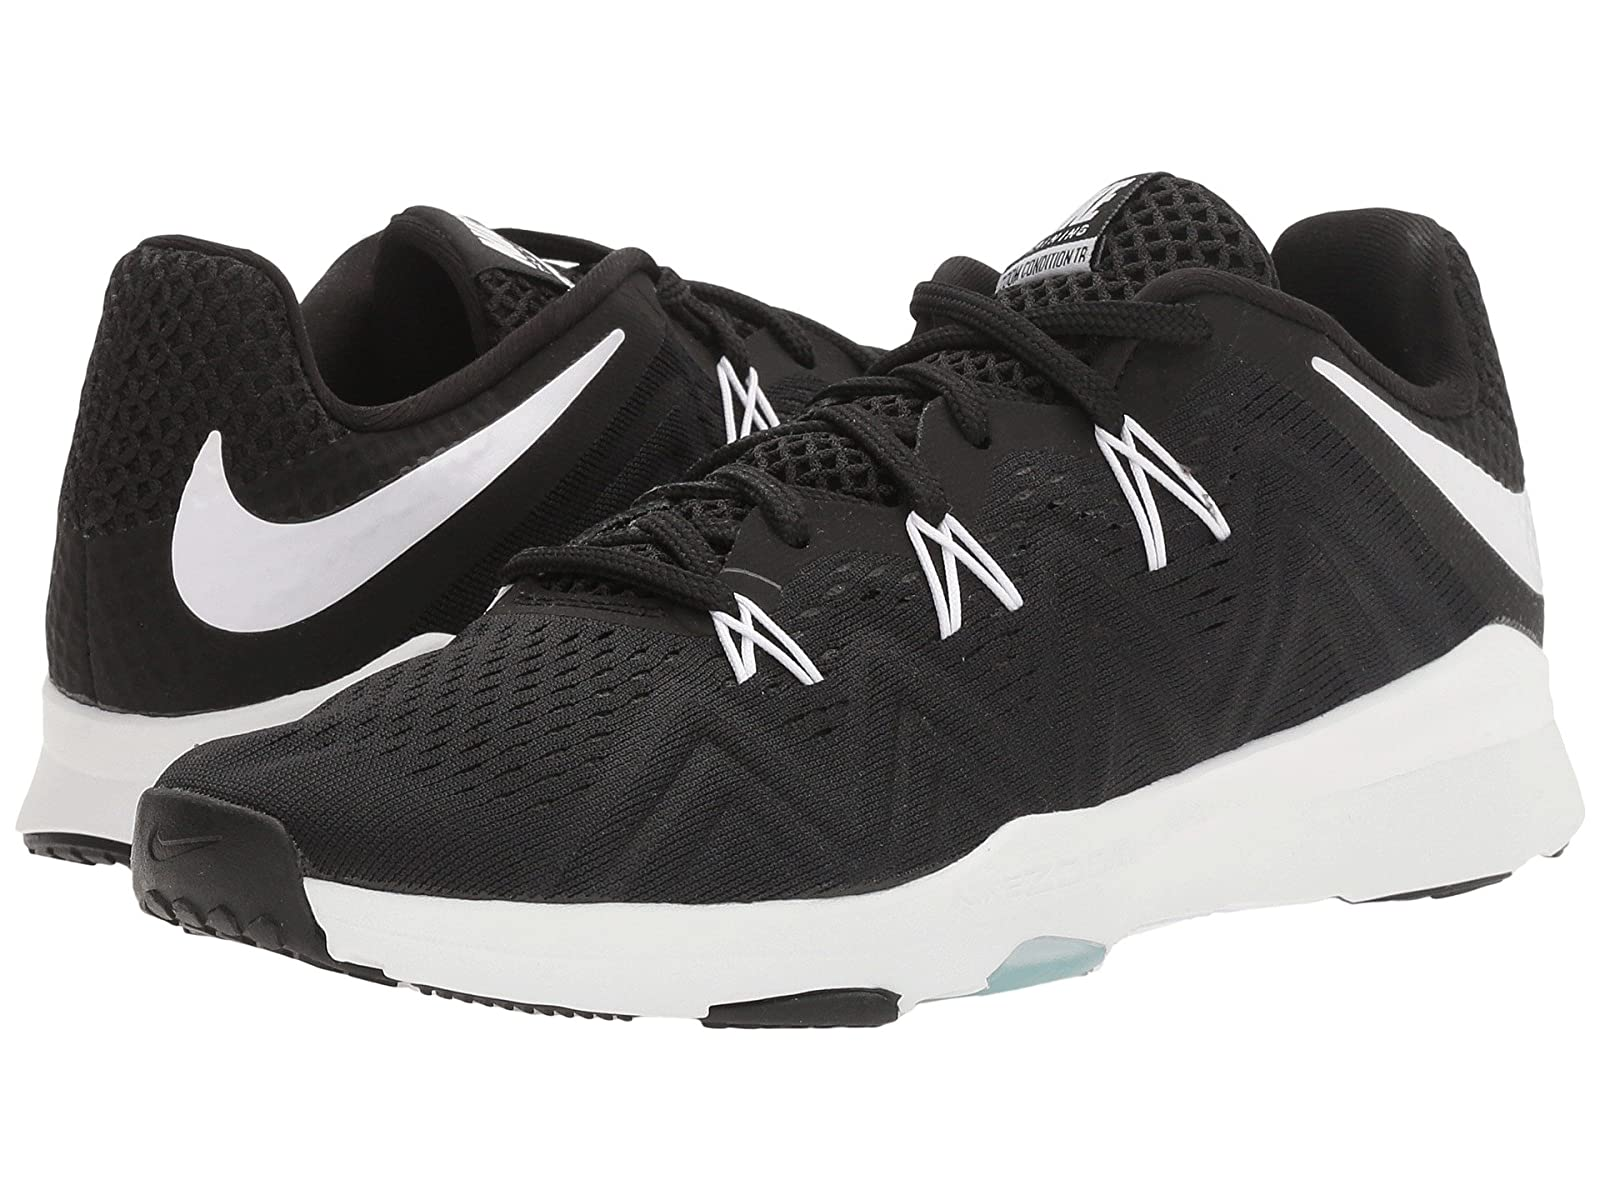 Nike Zoom Condition TRCheap and distinctive eye-catching shoes